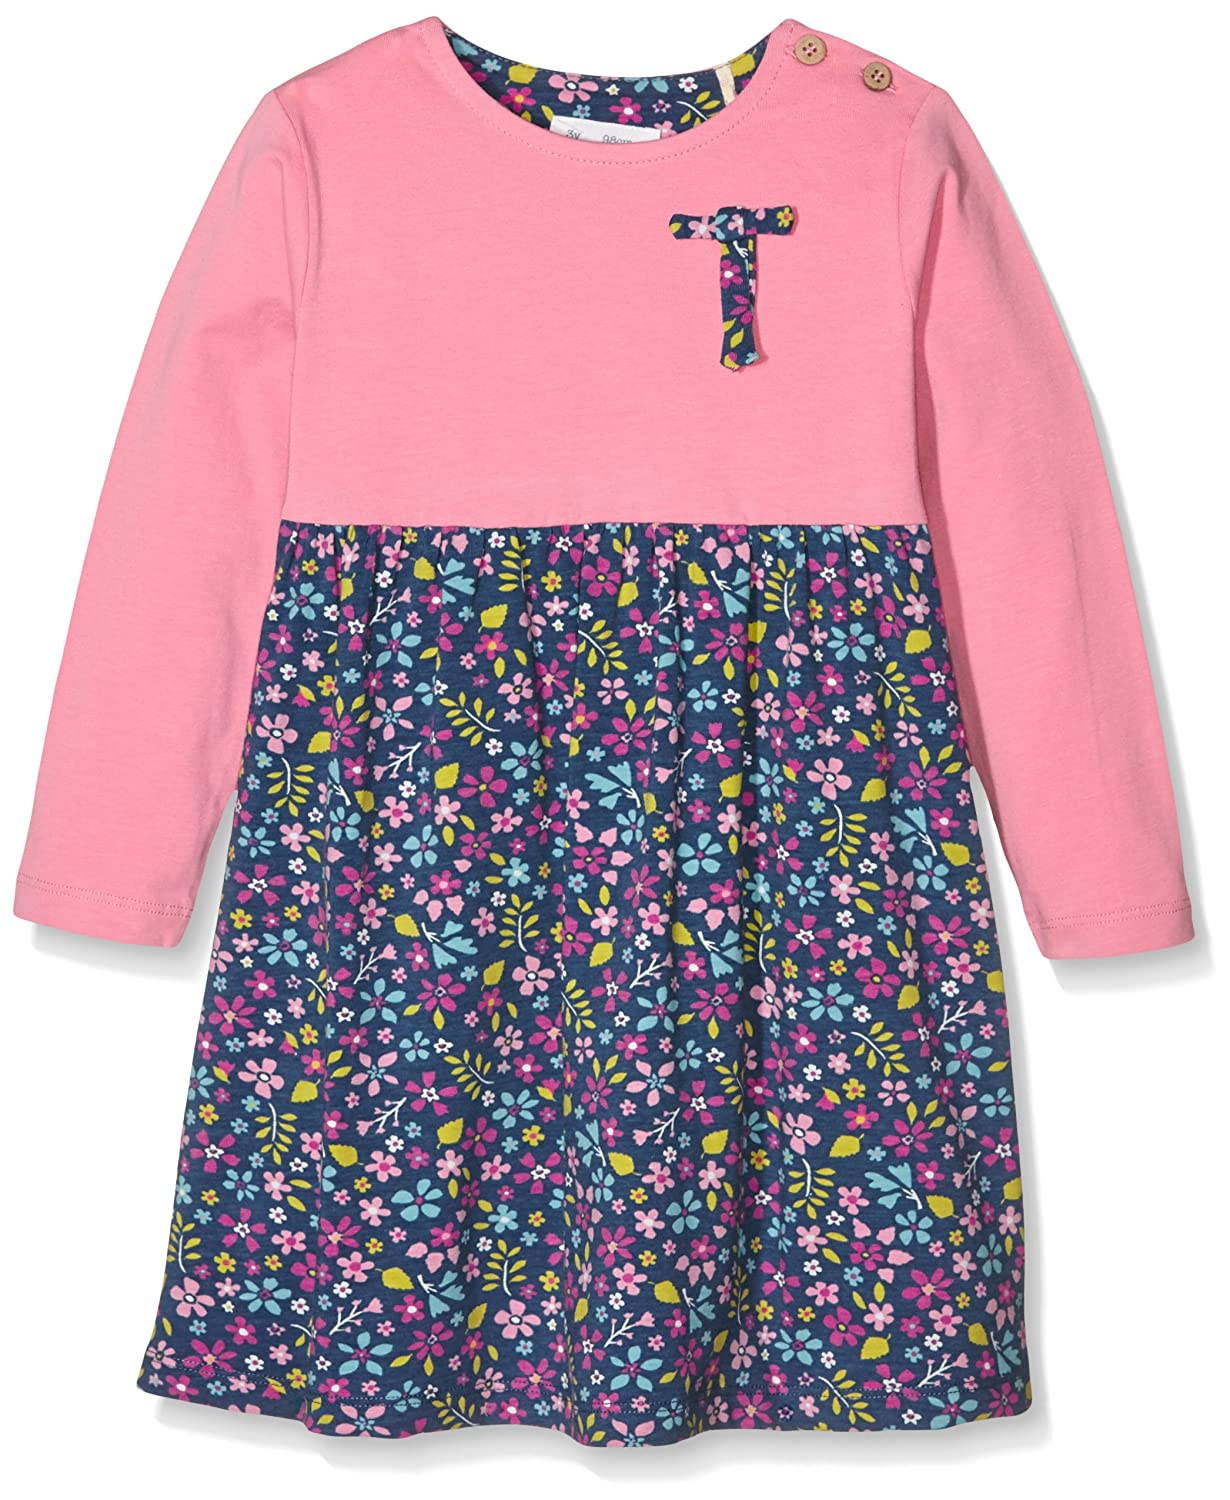 Kite Forget-Me-Not Dress, Robe Fille